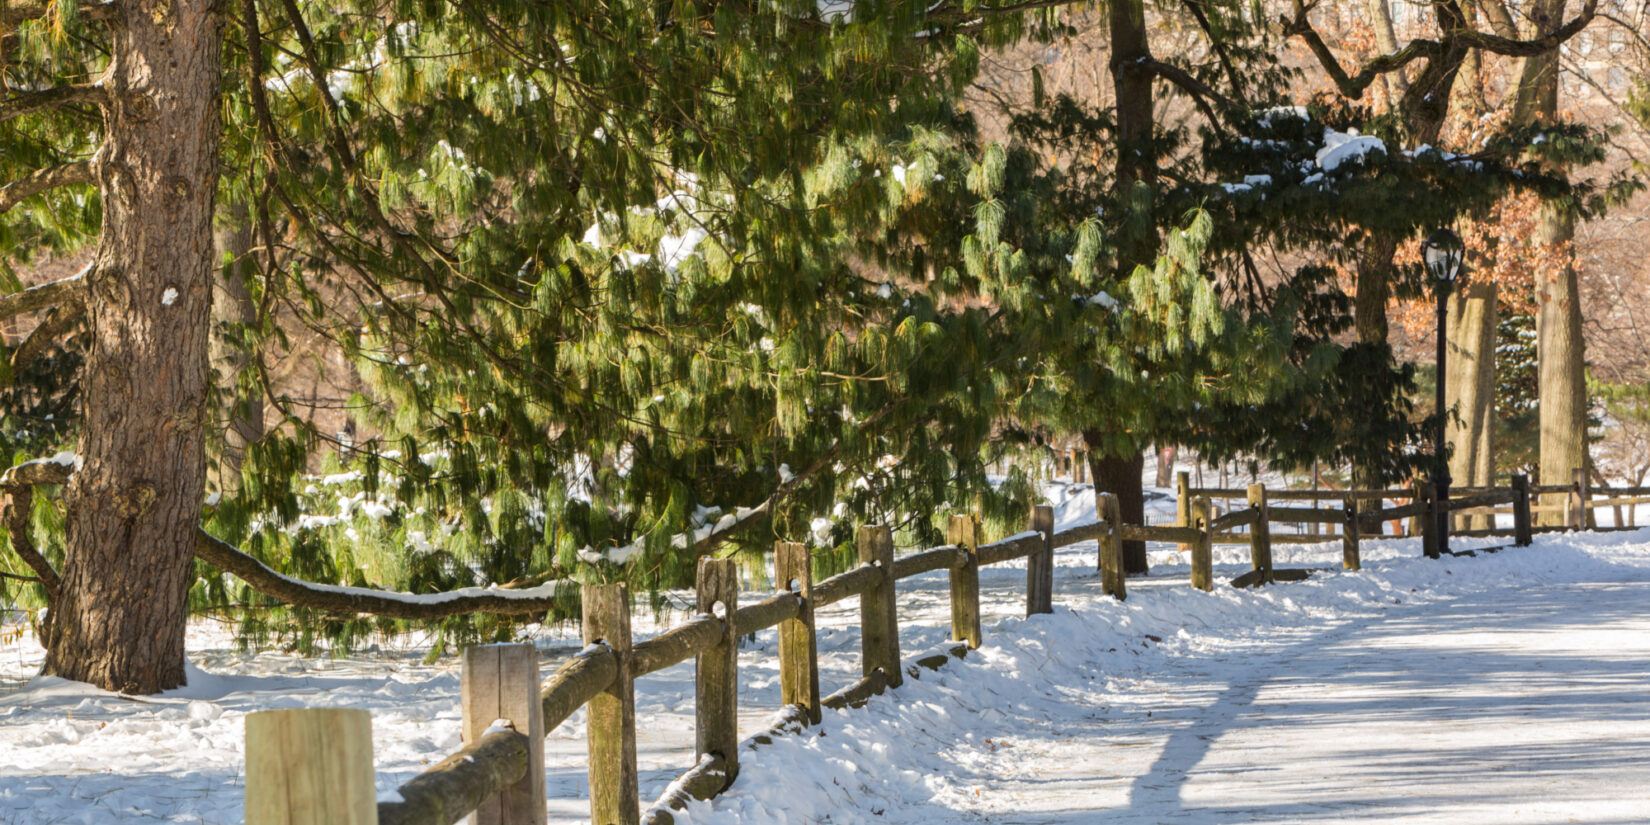 A rustic fence defines the view of the Pinetum under a blanket of snow.